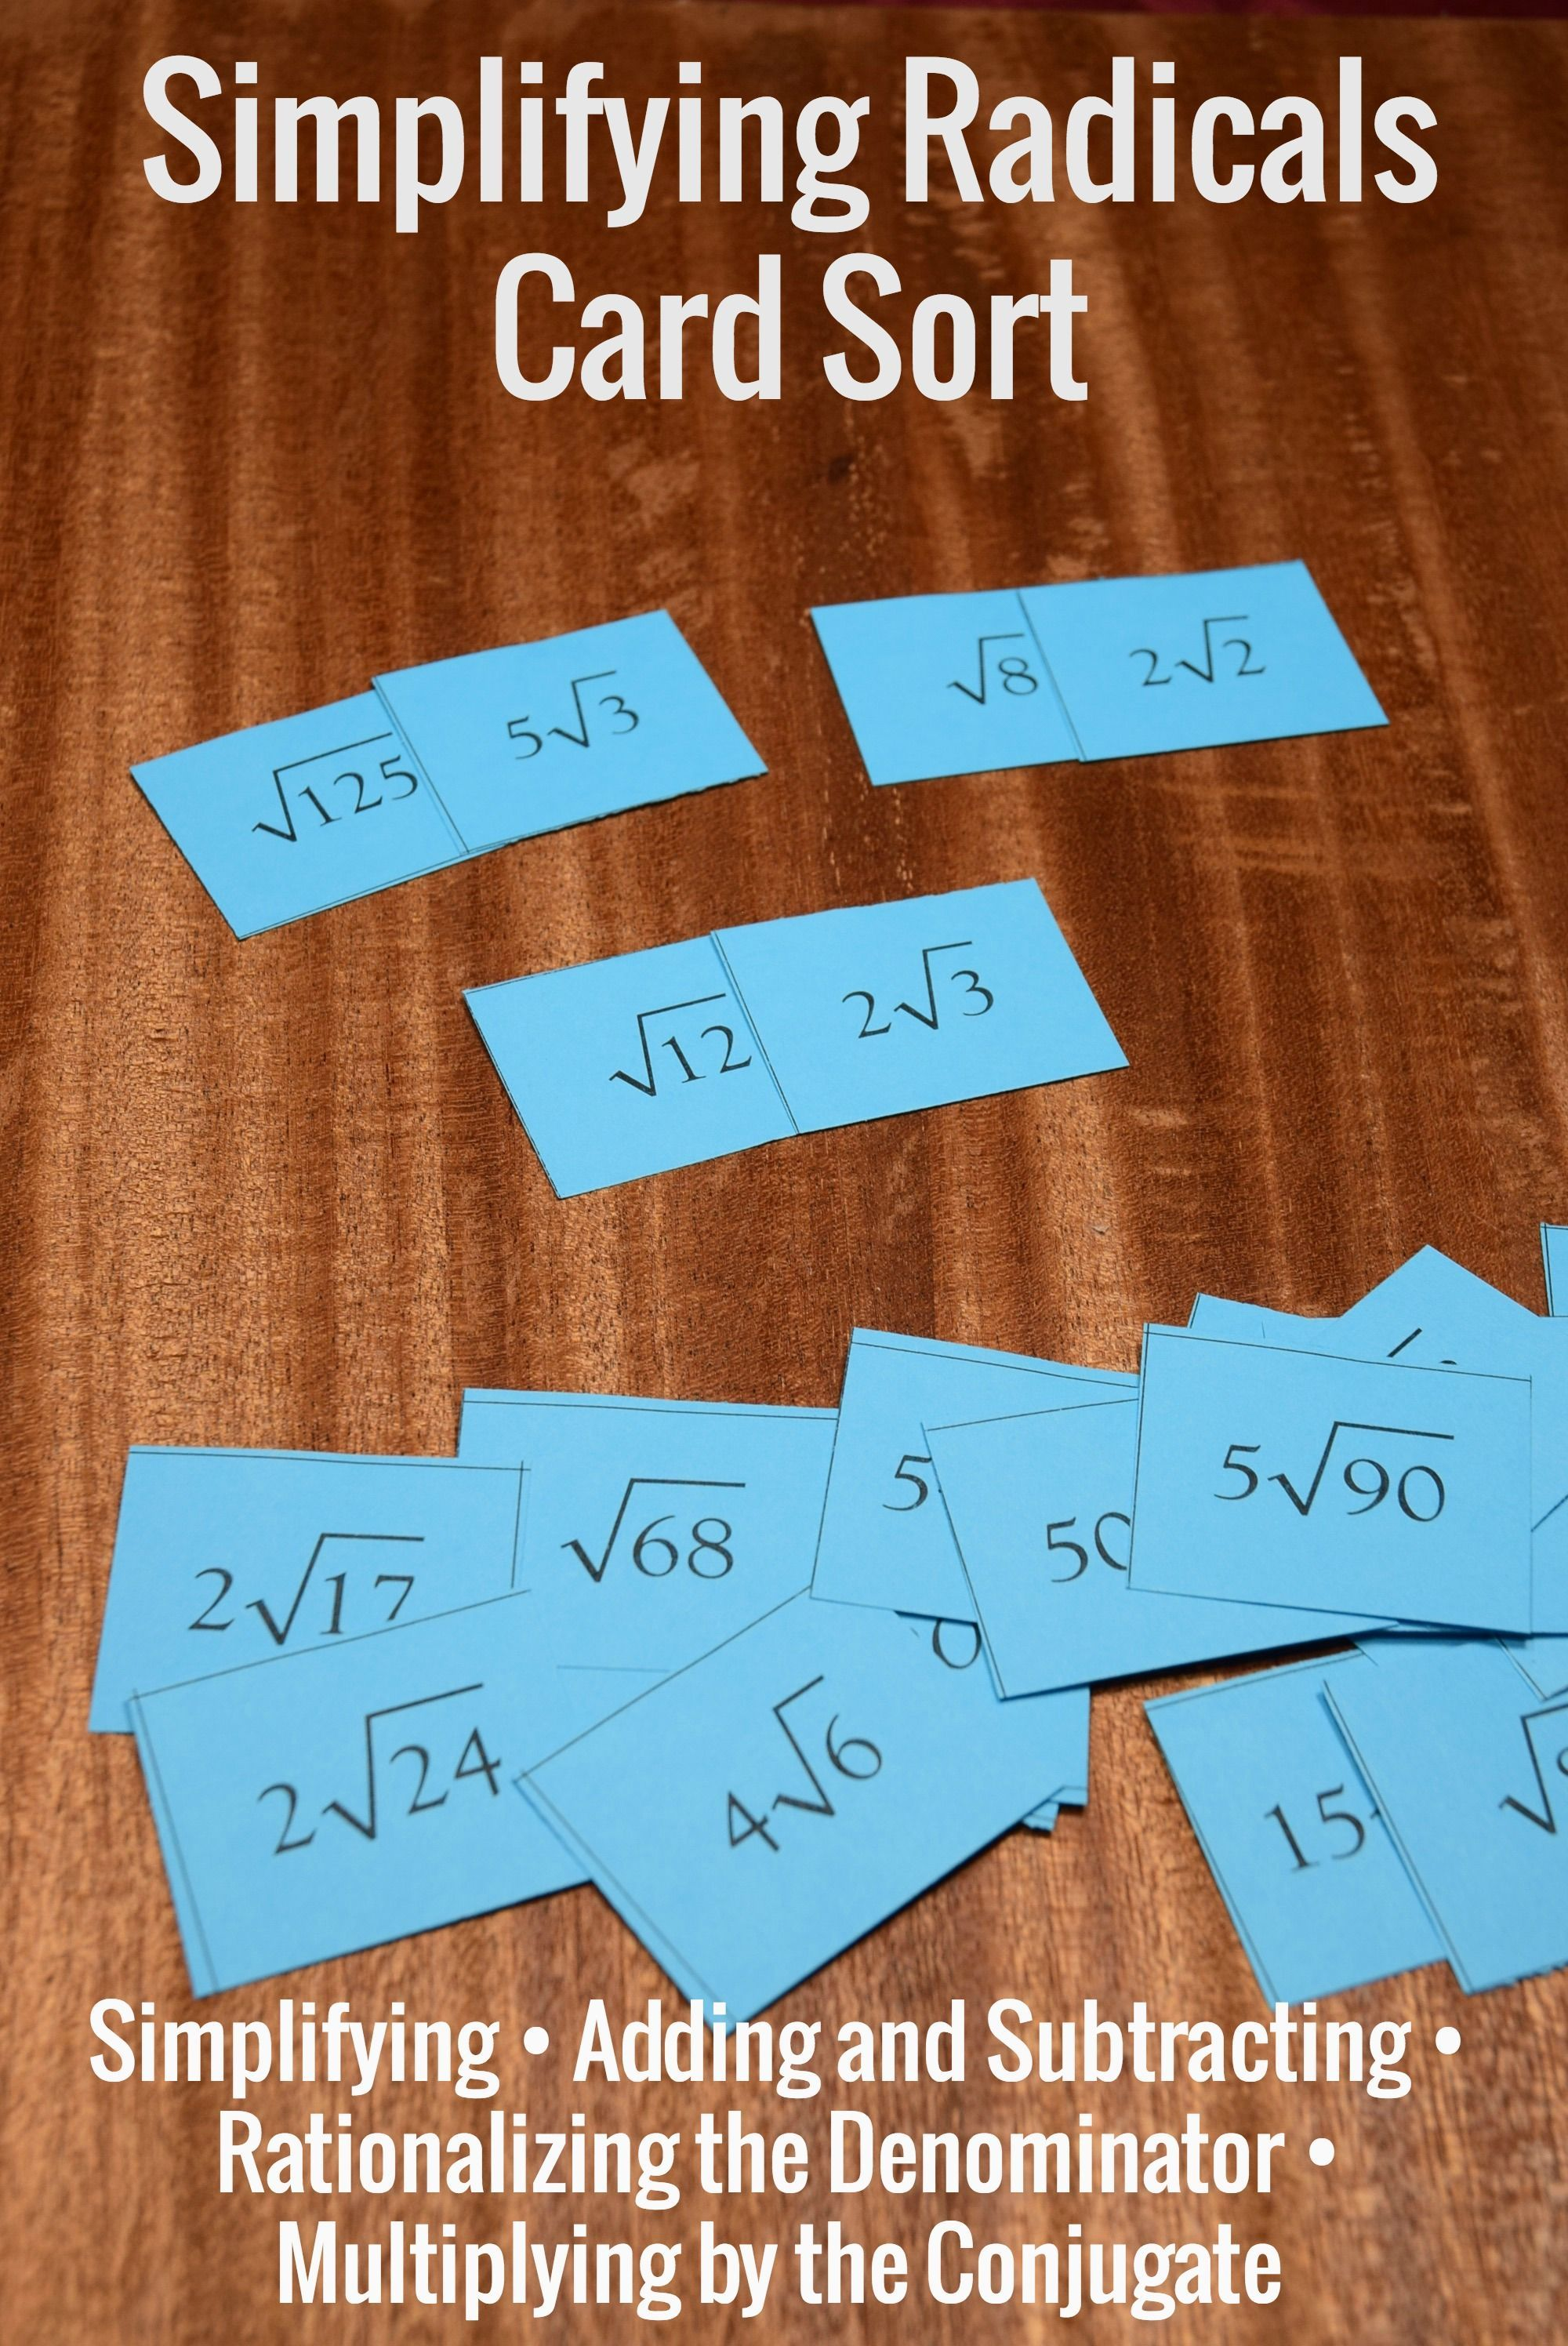 Radicals Card Sort (rationalizing and conjugates included ...